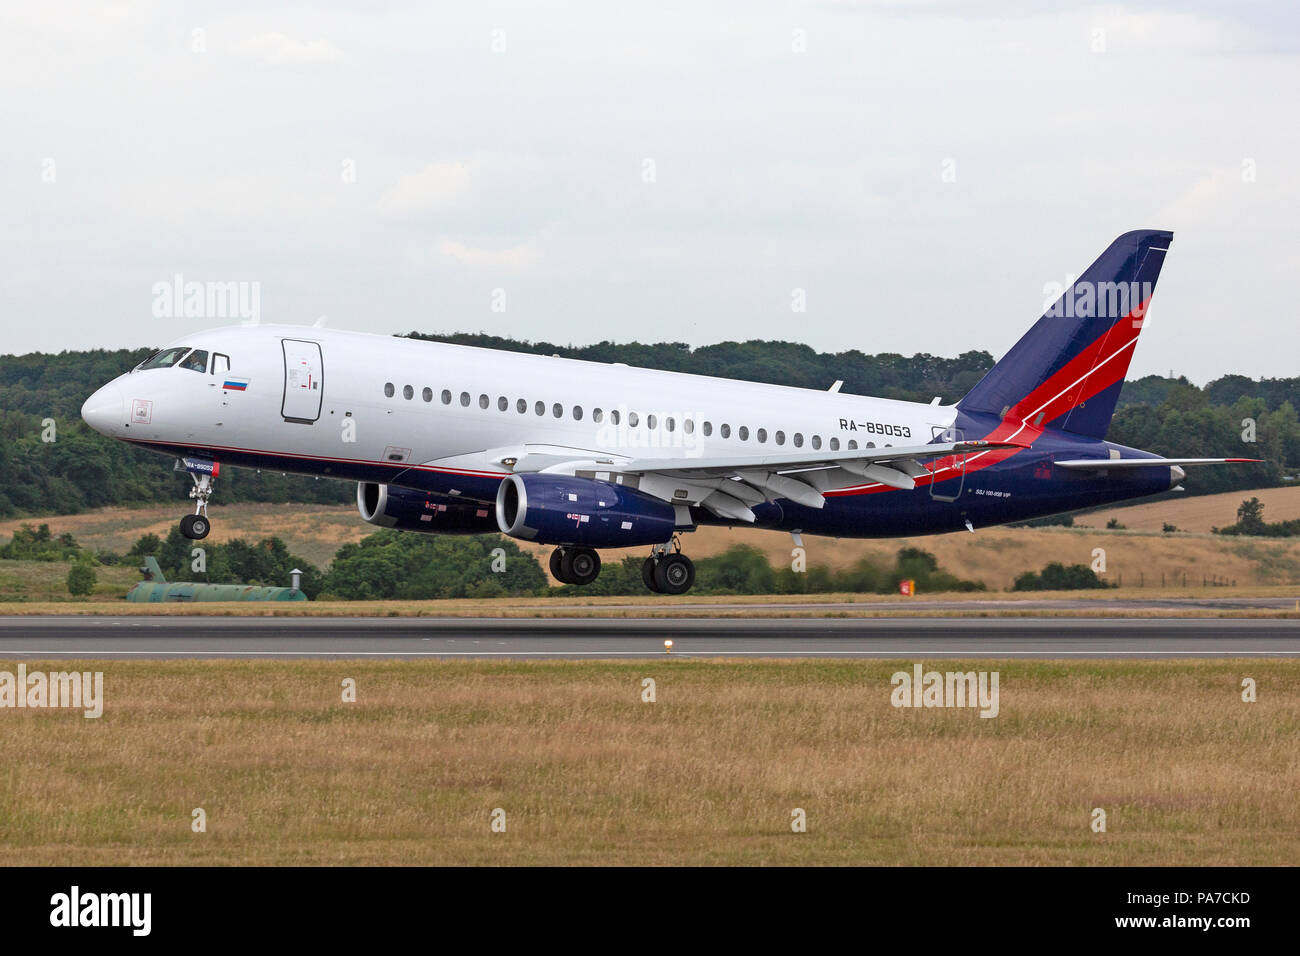 A Sukhoi Superjet SU-100 executive business jet aircraft, registered Russia as RA-89053, at London Luton Airport in England. - Stock Image